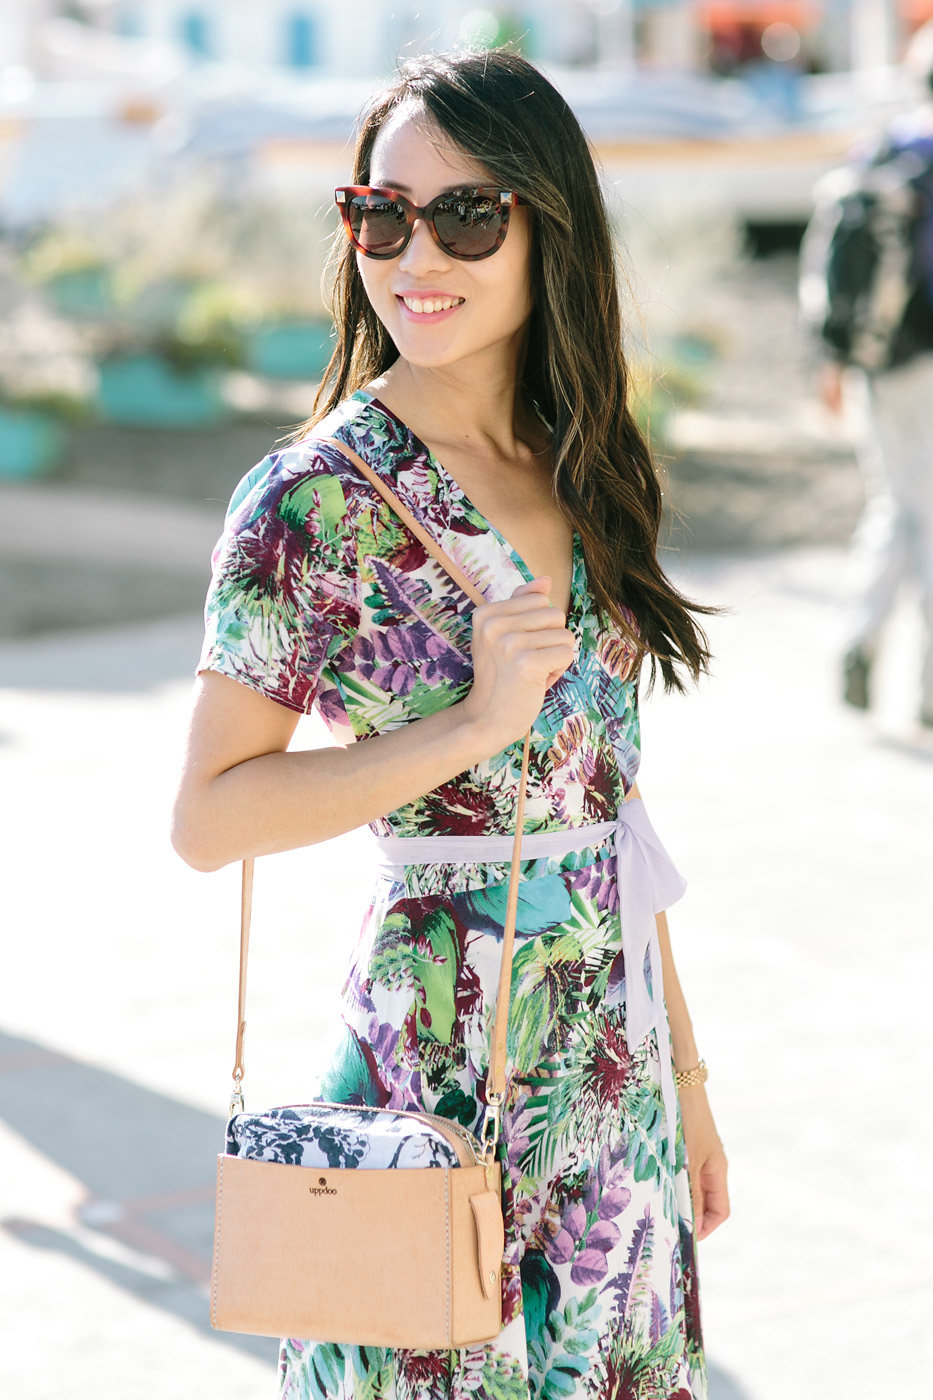 Amalfi Coast Honeymoon Ideas - What we wear. Uppdo purse. Photo: Joee Wong Photography, As seen on www.rebeccachan.ca